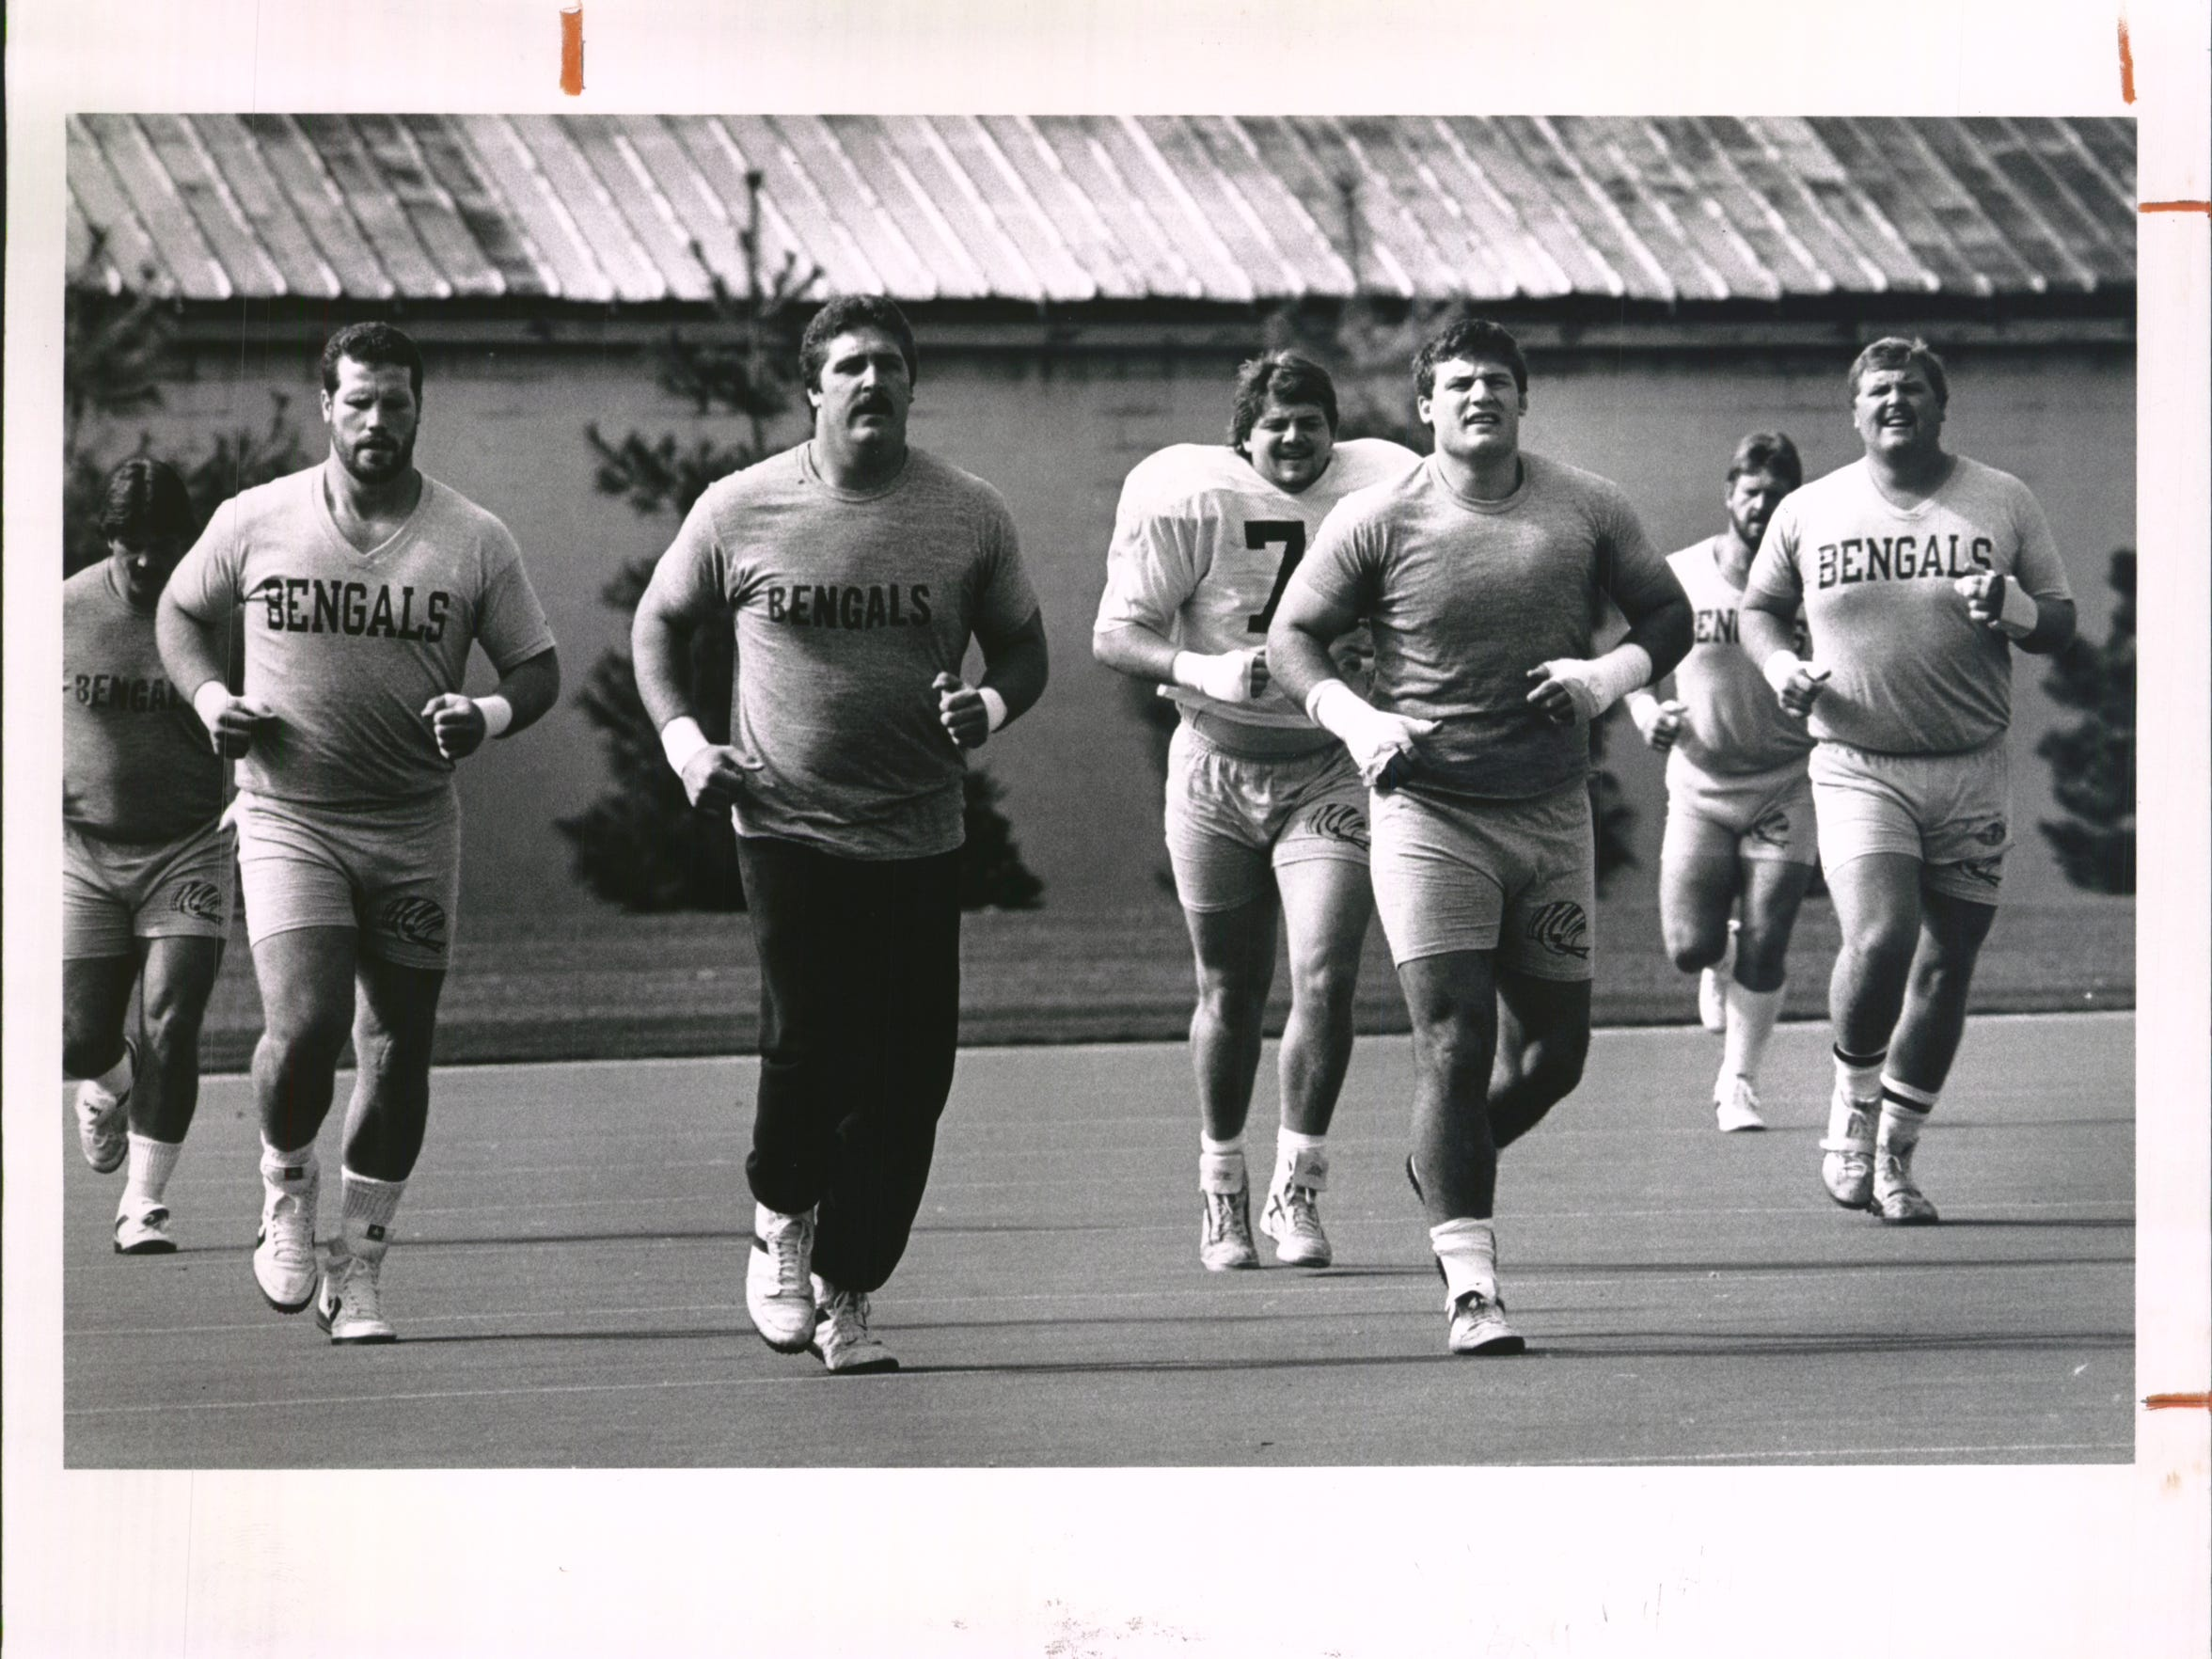 Bengals regulars returned to Spinney Field Monday and got in some jogging after a 2 p.m. meeting. From left are Joe Walter, David Douglas, Tim Krumrie, Bruce Kozerski and Brian Blados.